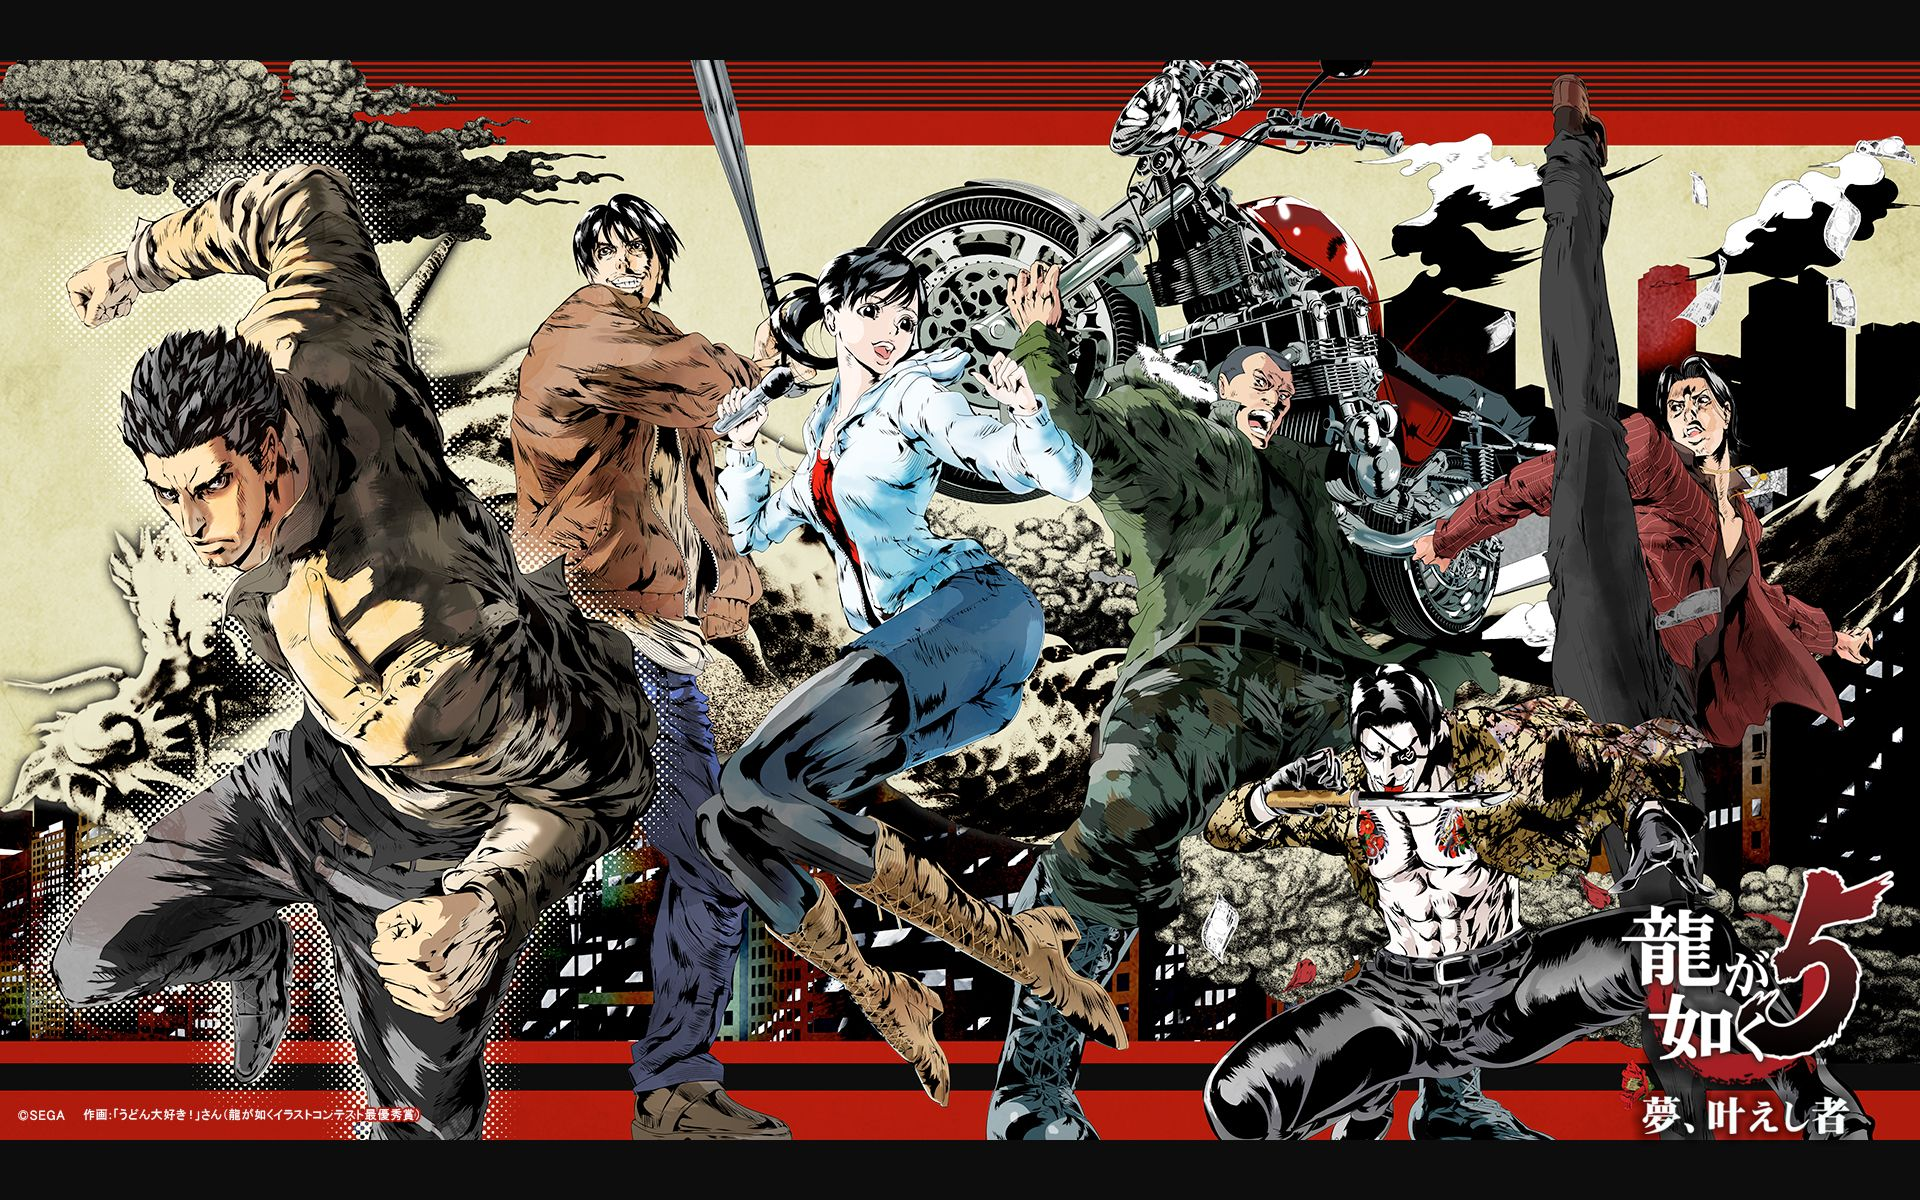 Yakuza 5 Wallpaper Game PS4 Official Fan Entry